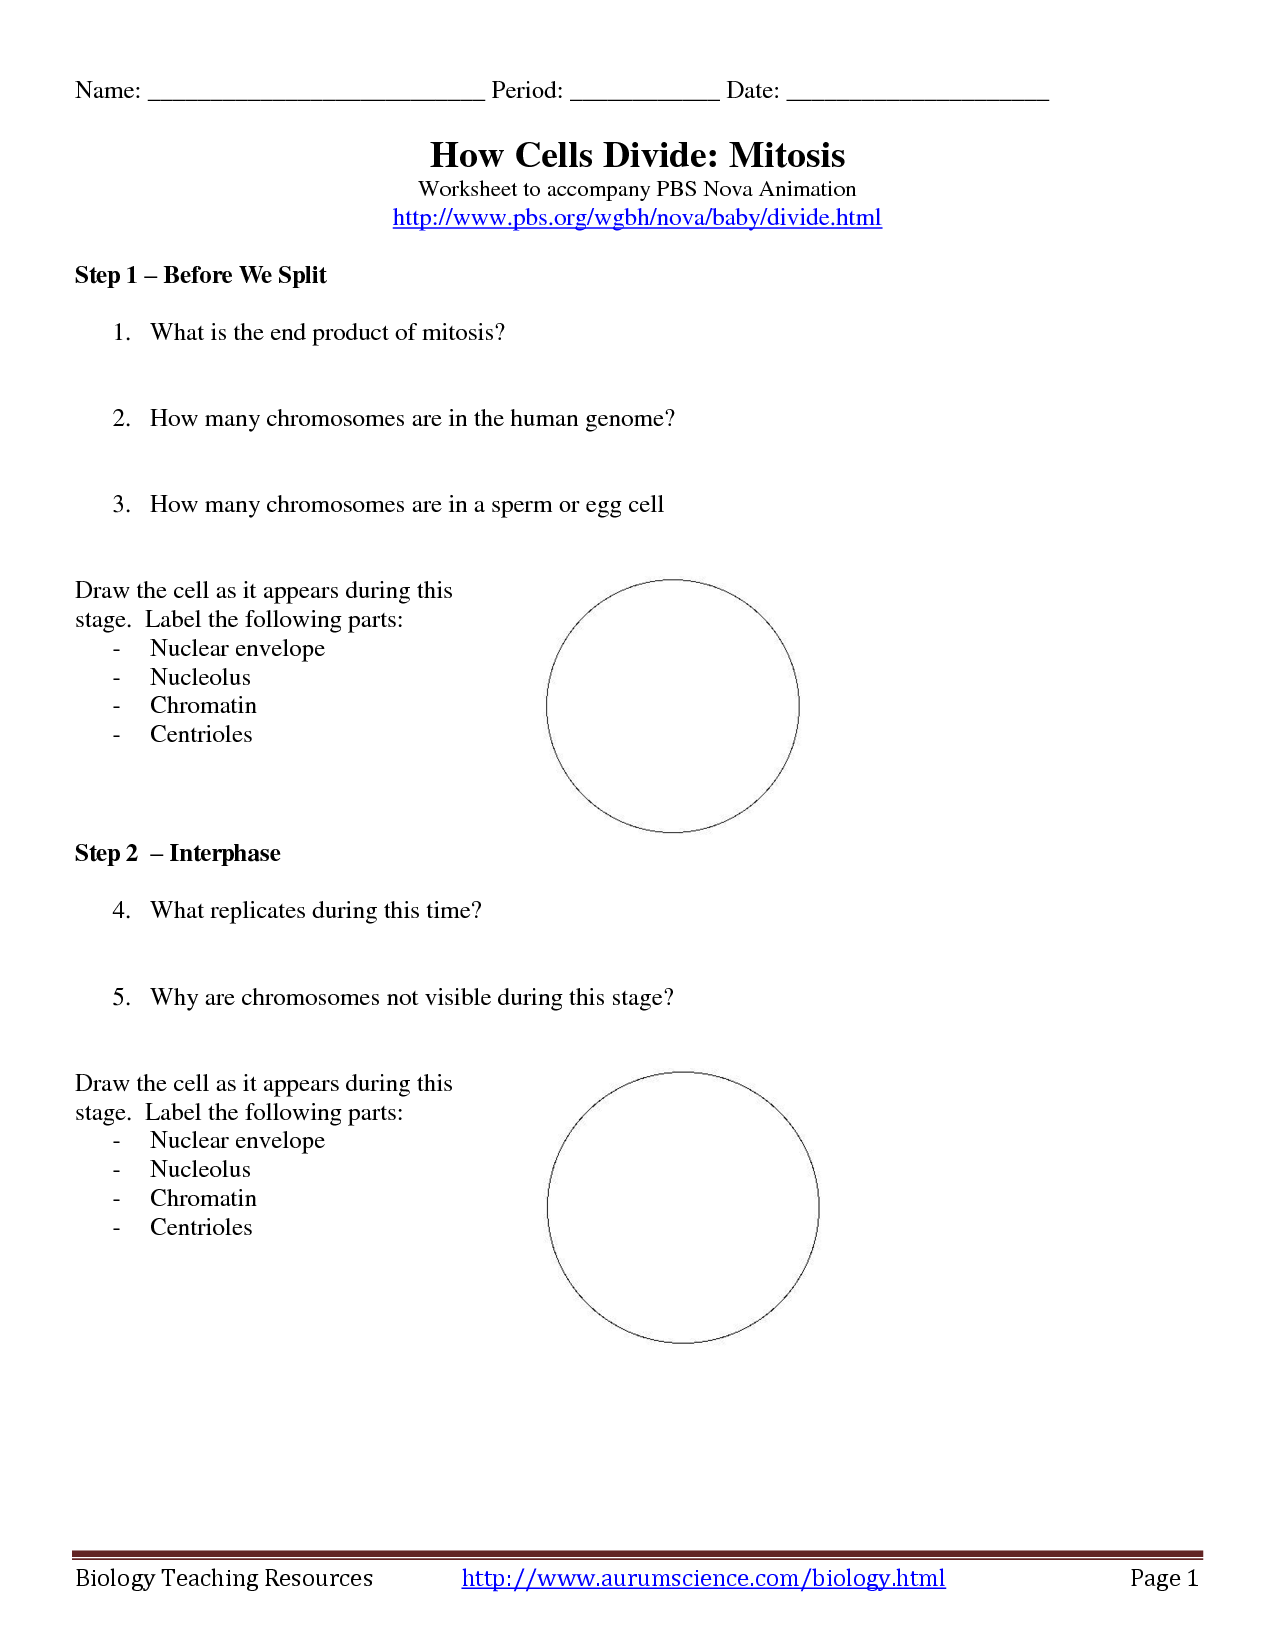 14 Best Images of Mitosis Worksheet Answers Crossword  Cell Division Crossword Puzzle Answer